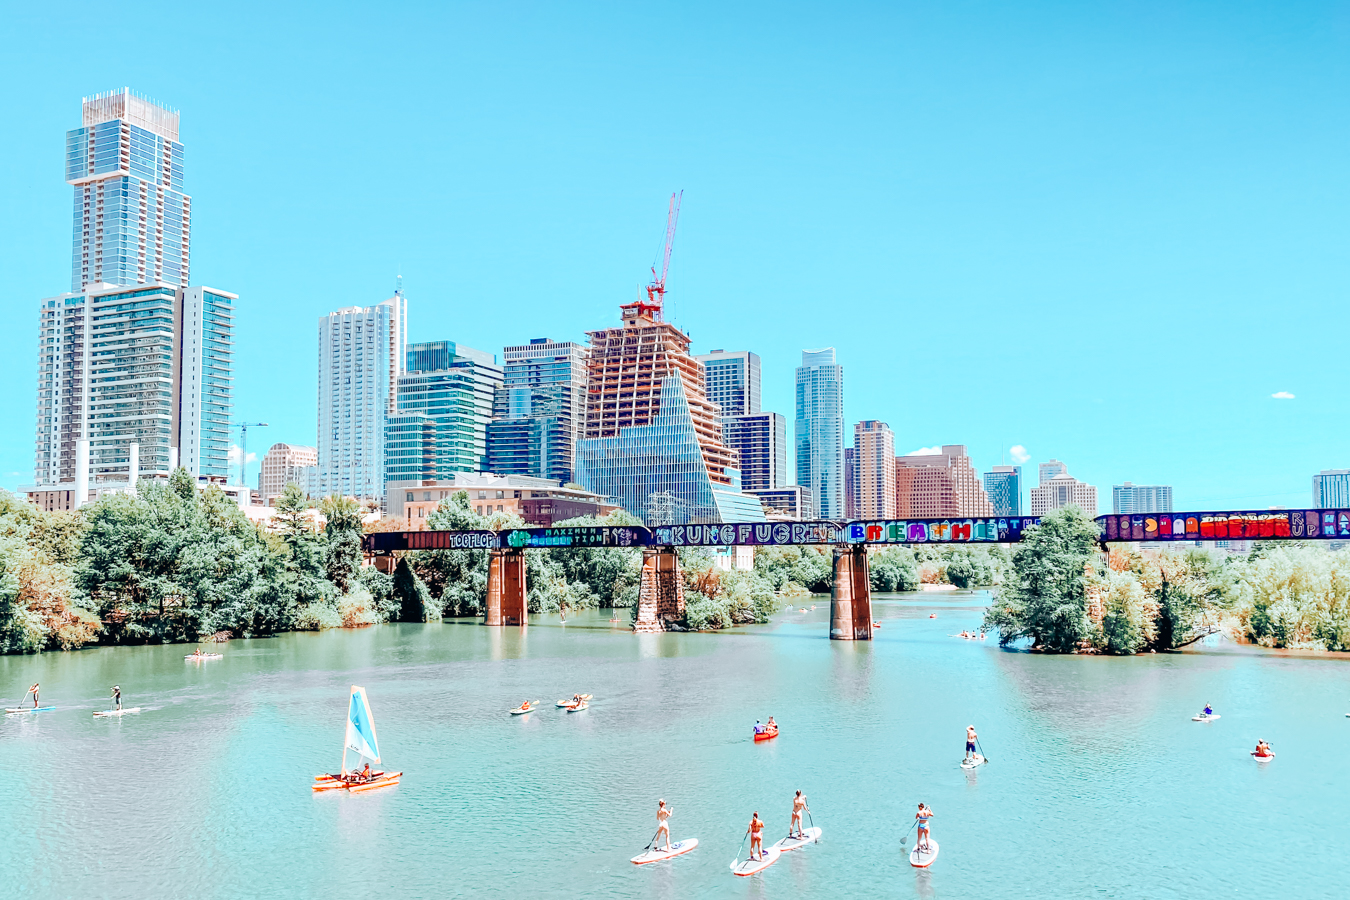 Skyline of Austin from the water